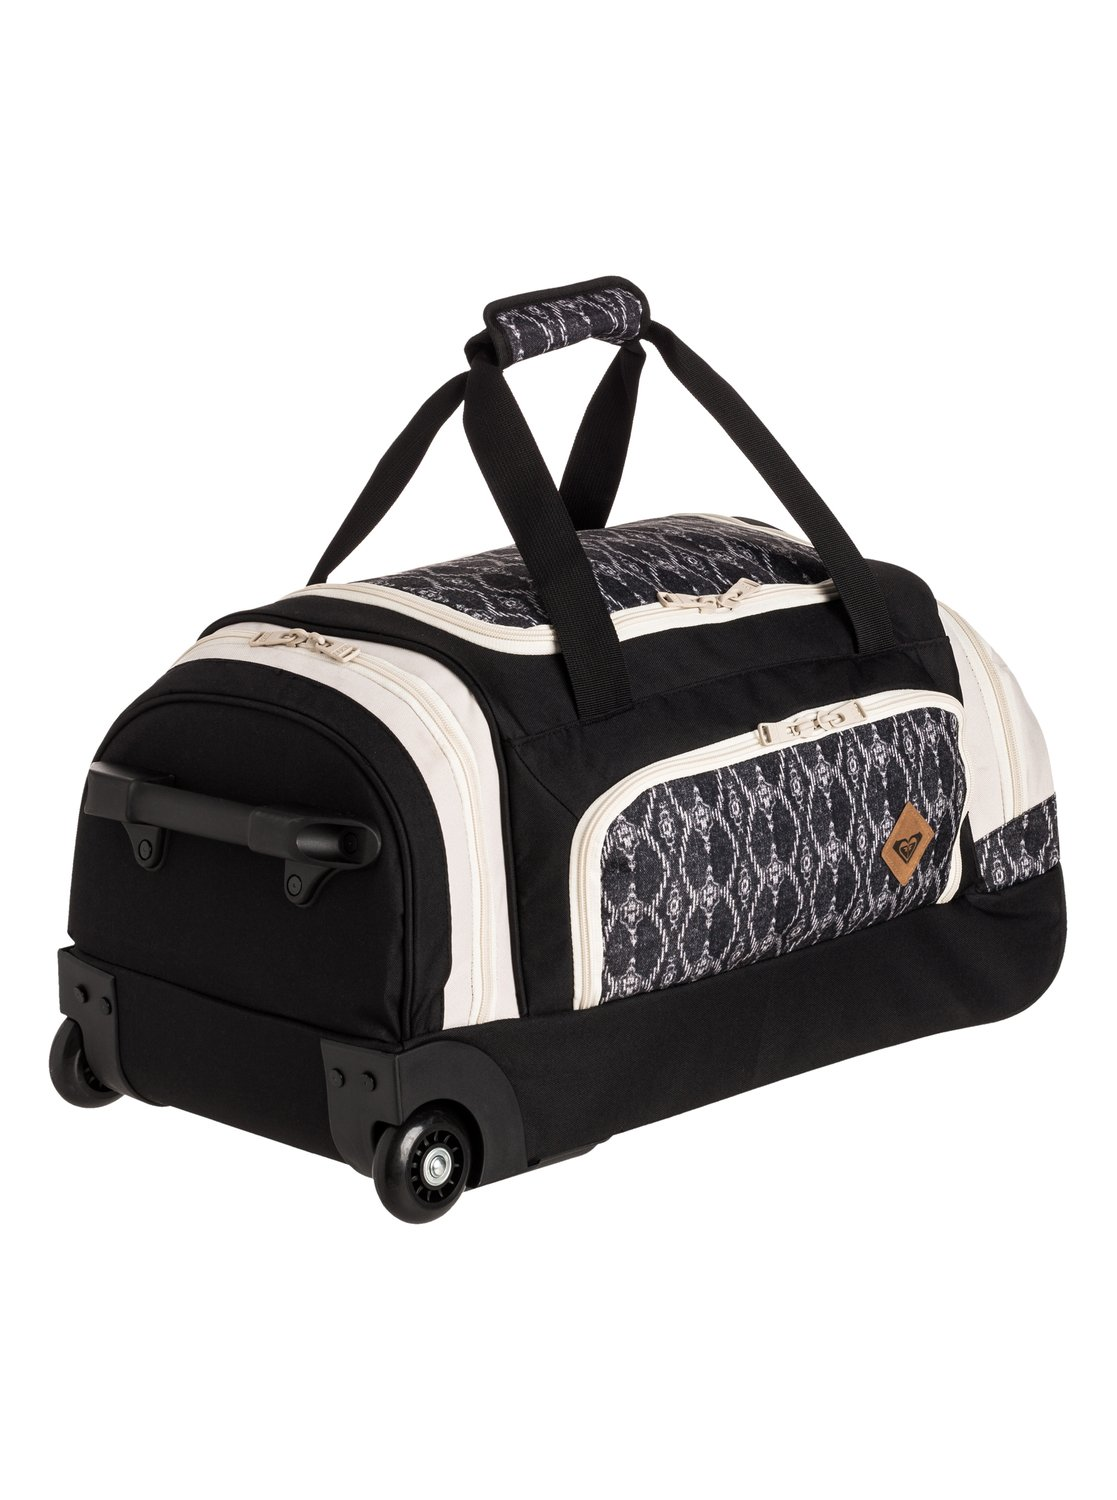 22 rolling duffle bag tprx08001 roxy. Black Bedroom Furniture Sets. Home Design Ideas